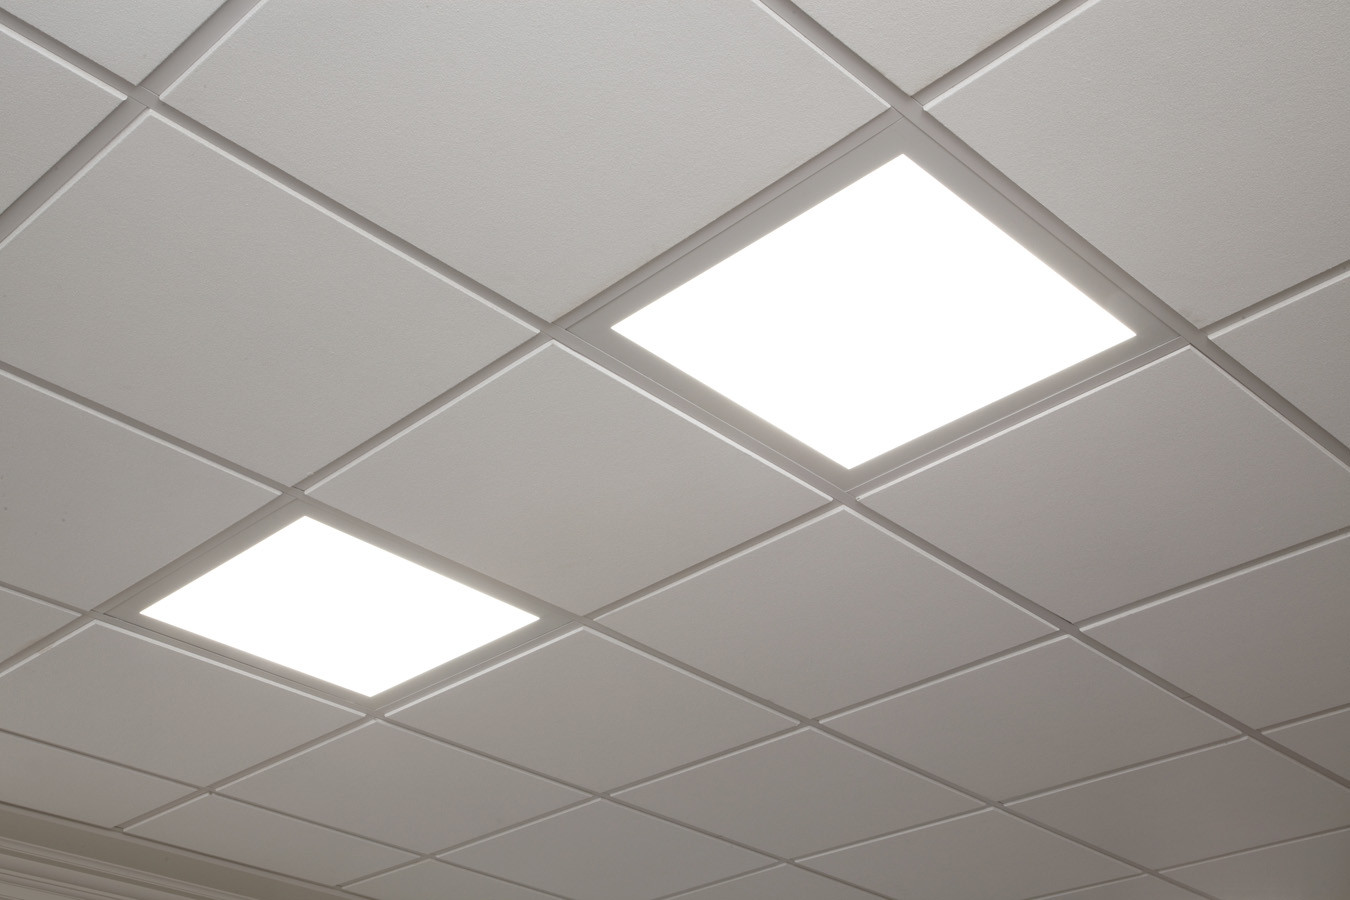 Suspended ceiling grid light panels - Enhancing the look of your room by choosing the favorable ...